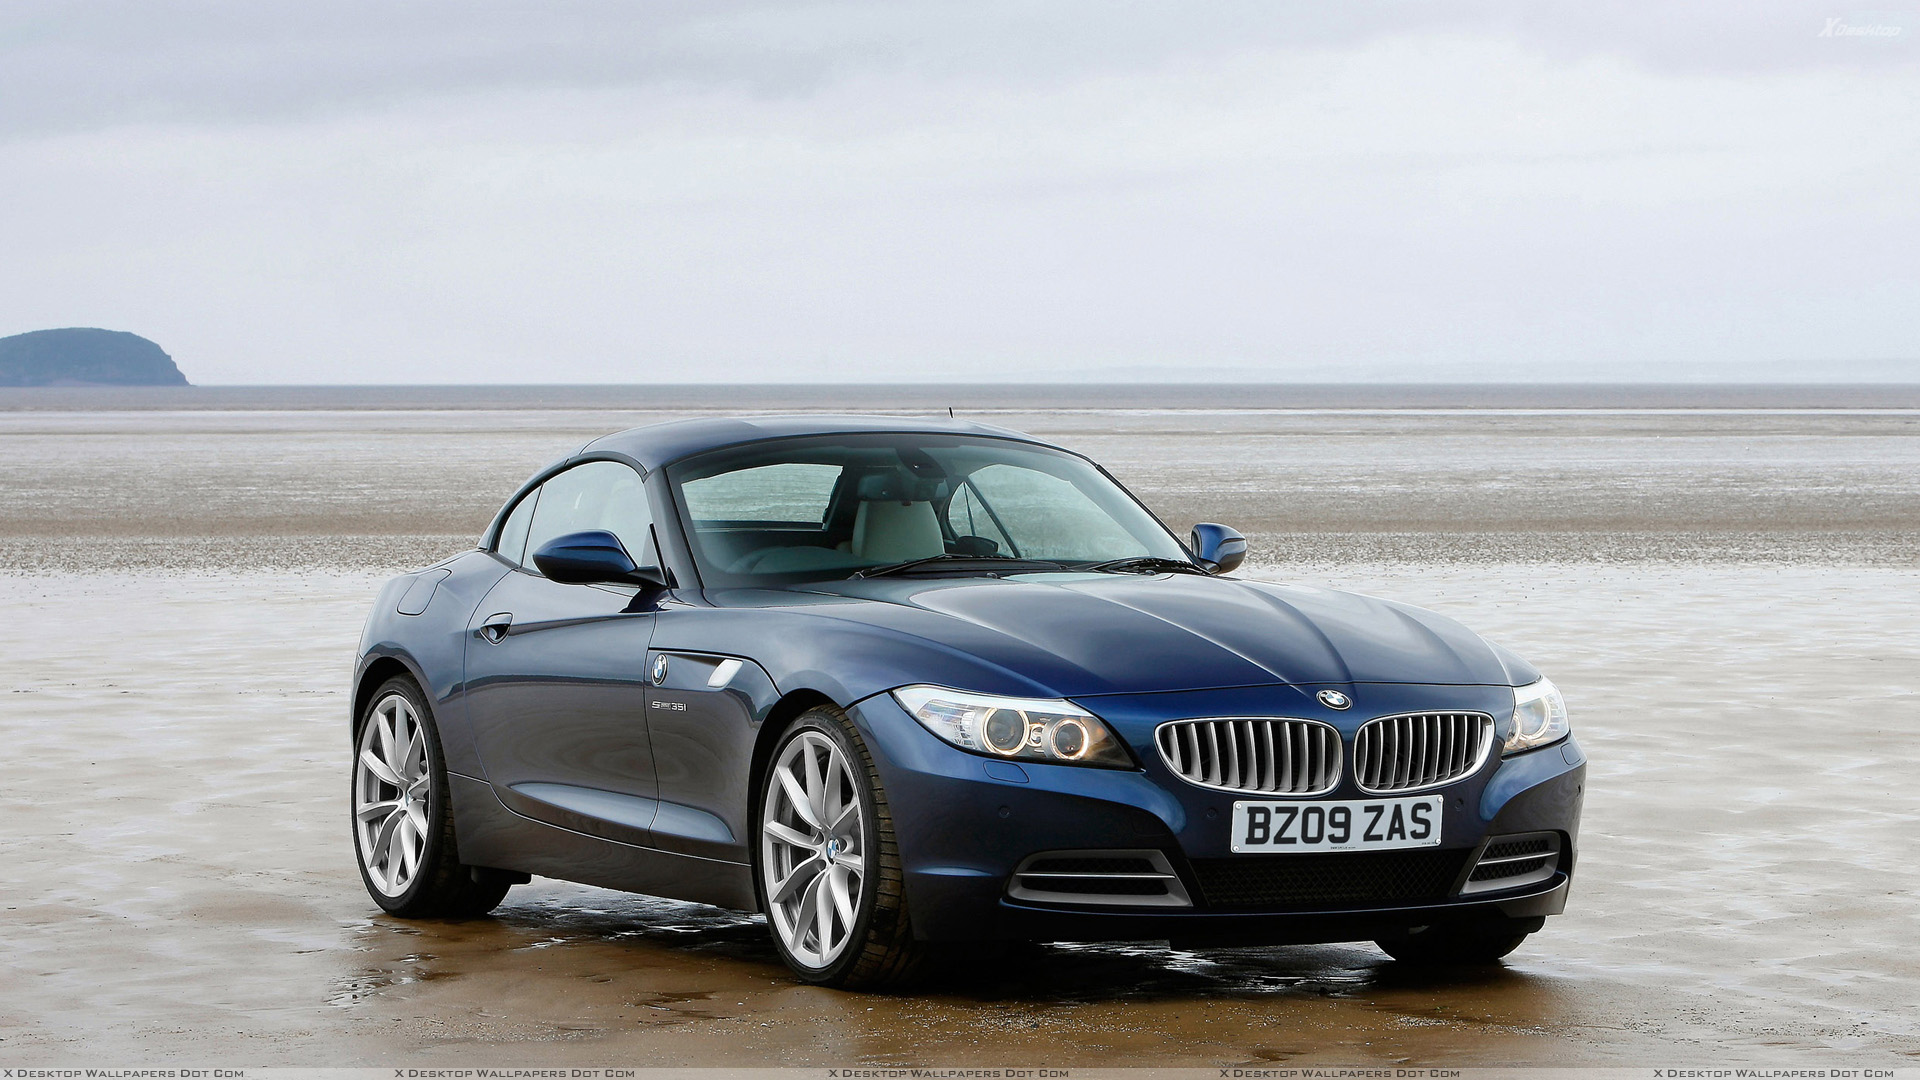 2009 Bmw Z4 Front Side Pose In Blue Wallpaper